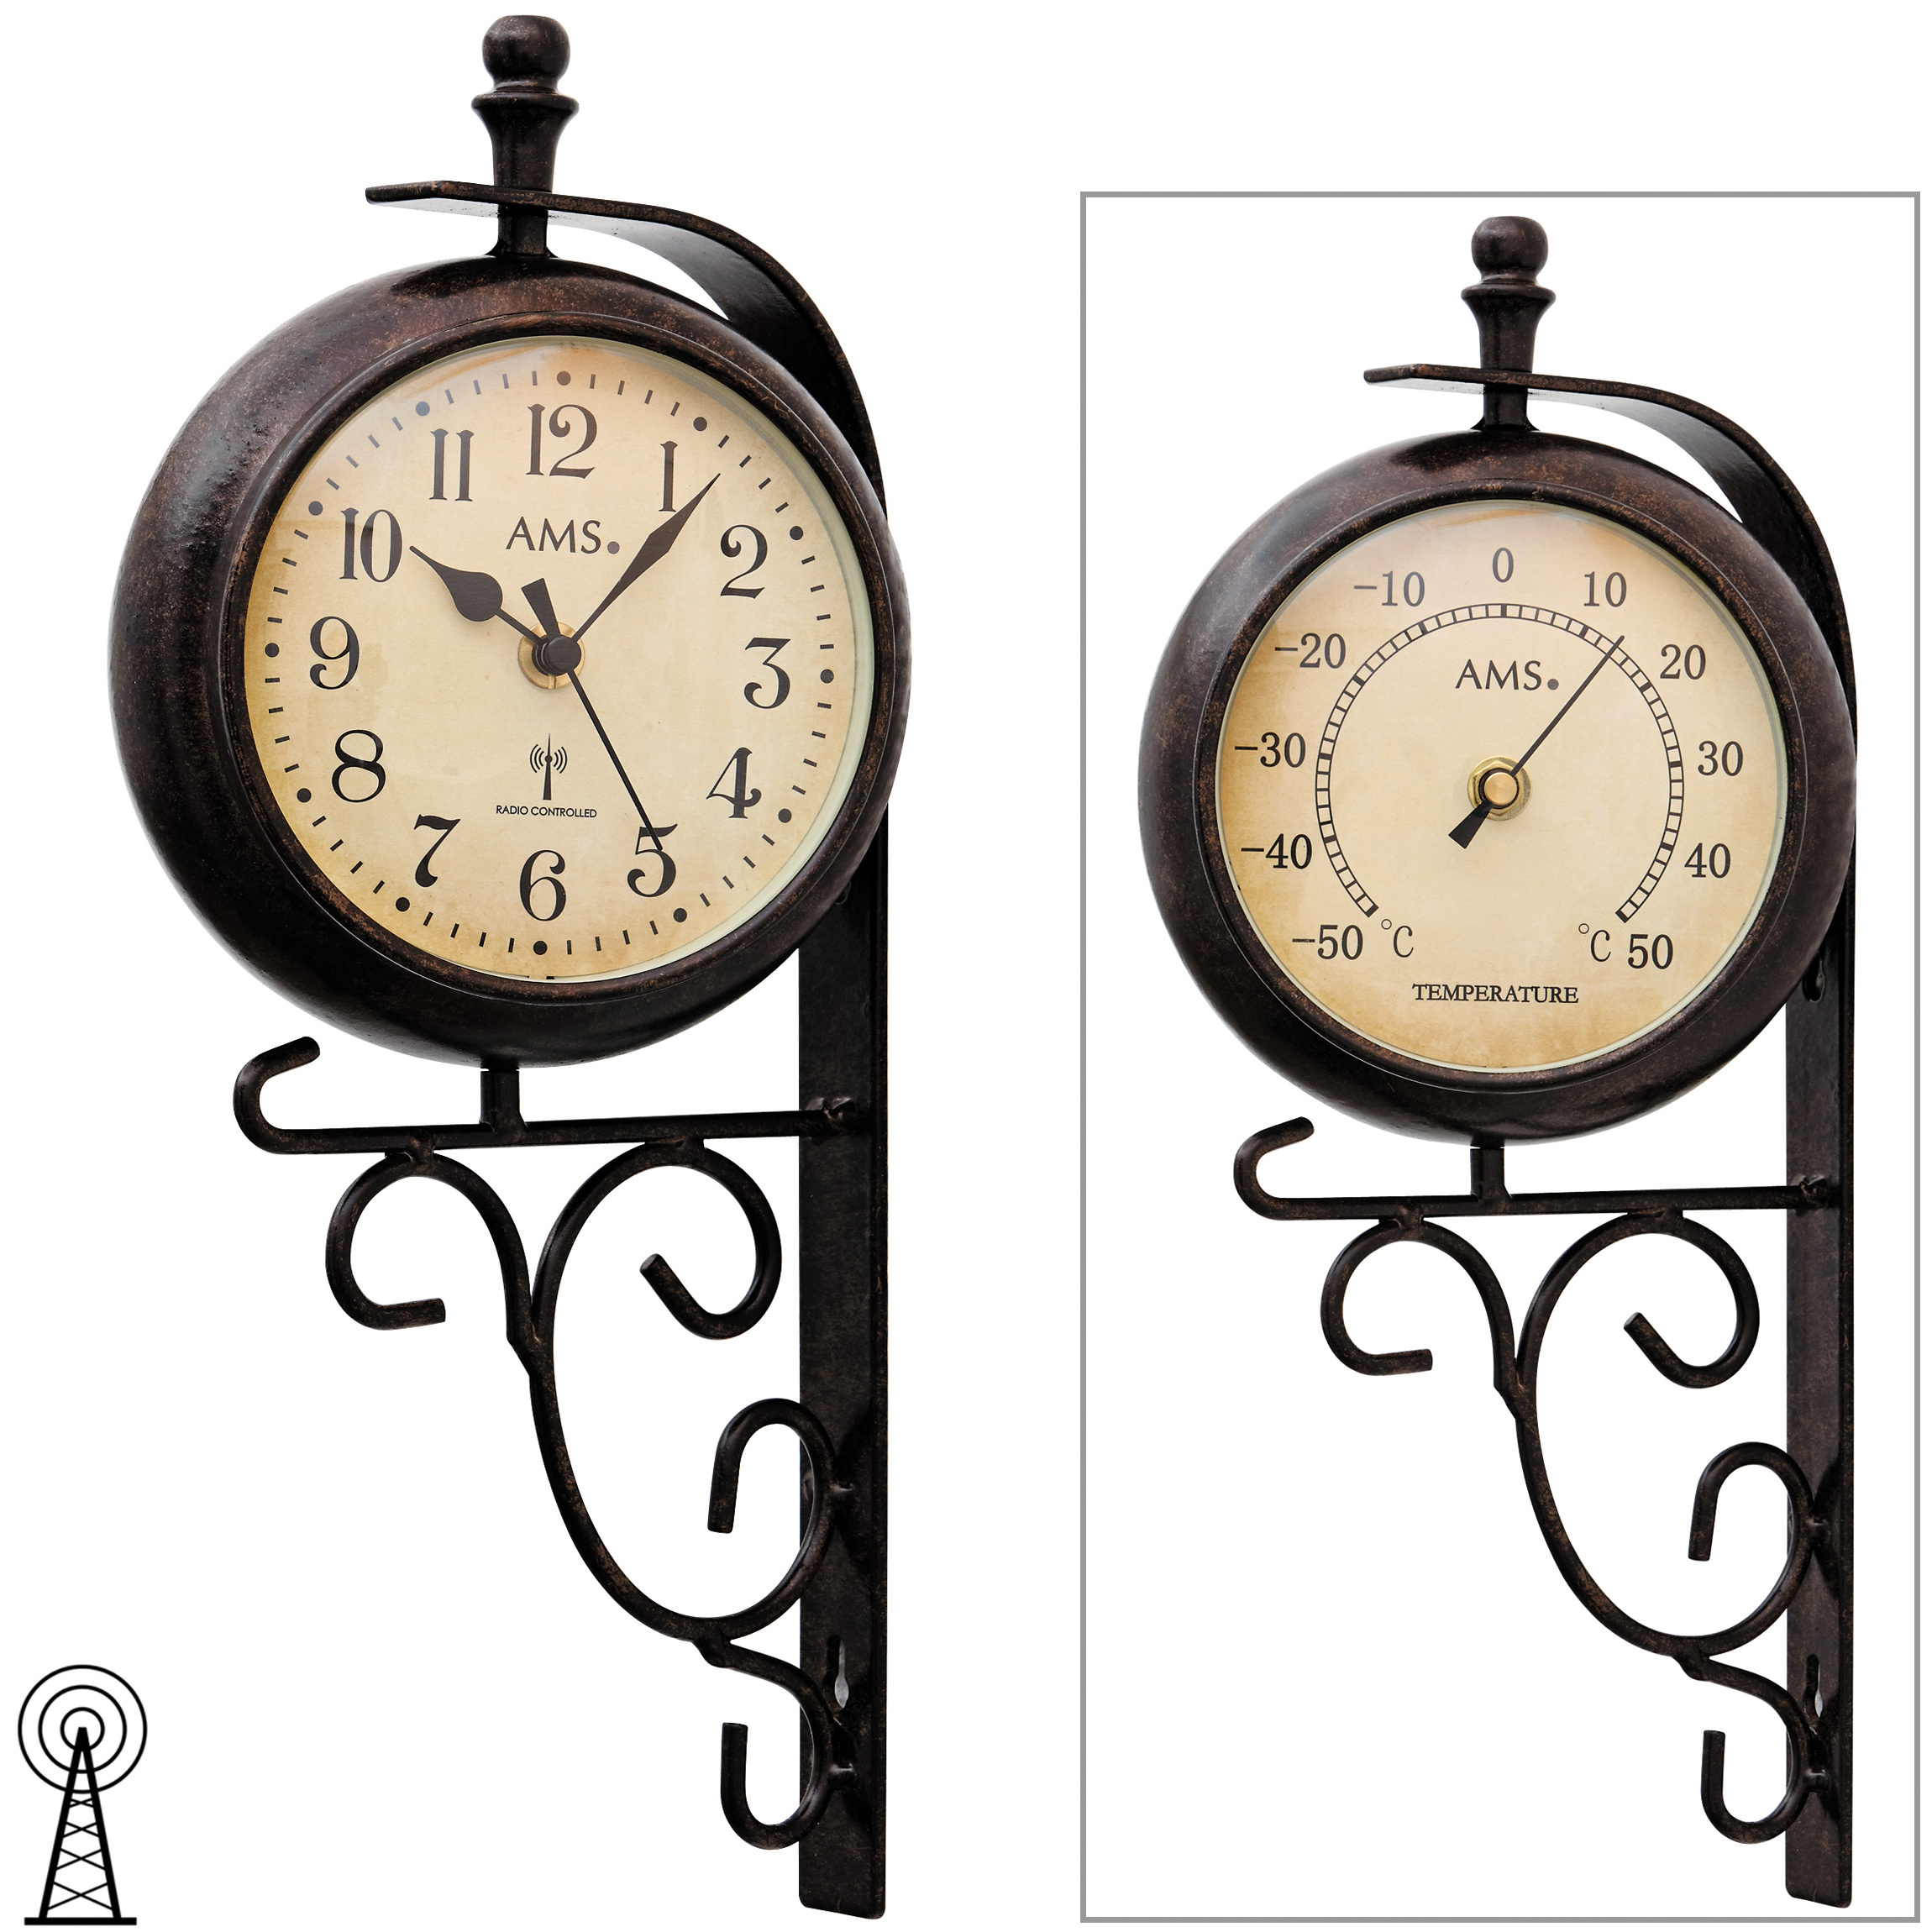 ams 5961 wanduhr funk funkwanduhr mit thermometer antik vintage retro wetterfest ebay. Black Bedroom Furniture Sets. Home Design Ideas